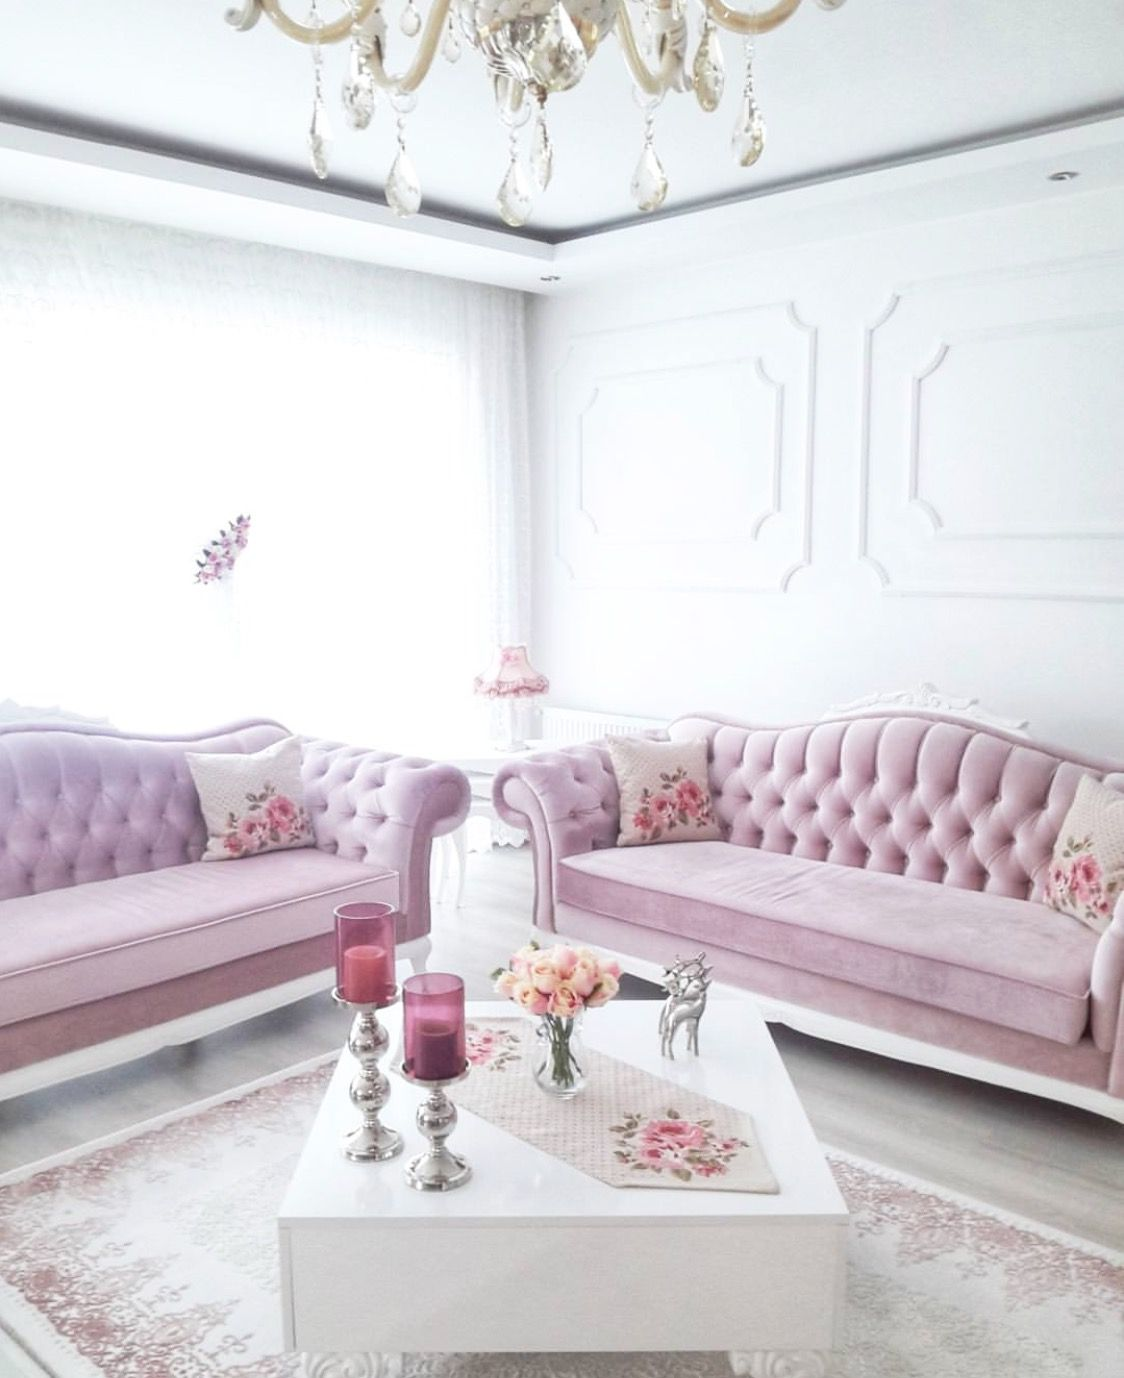 15 beautiful homes that are sure to make your heart skip a beat home room design pastel home decor pink living room